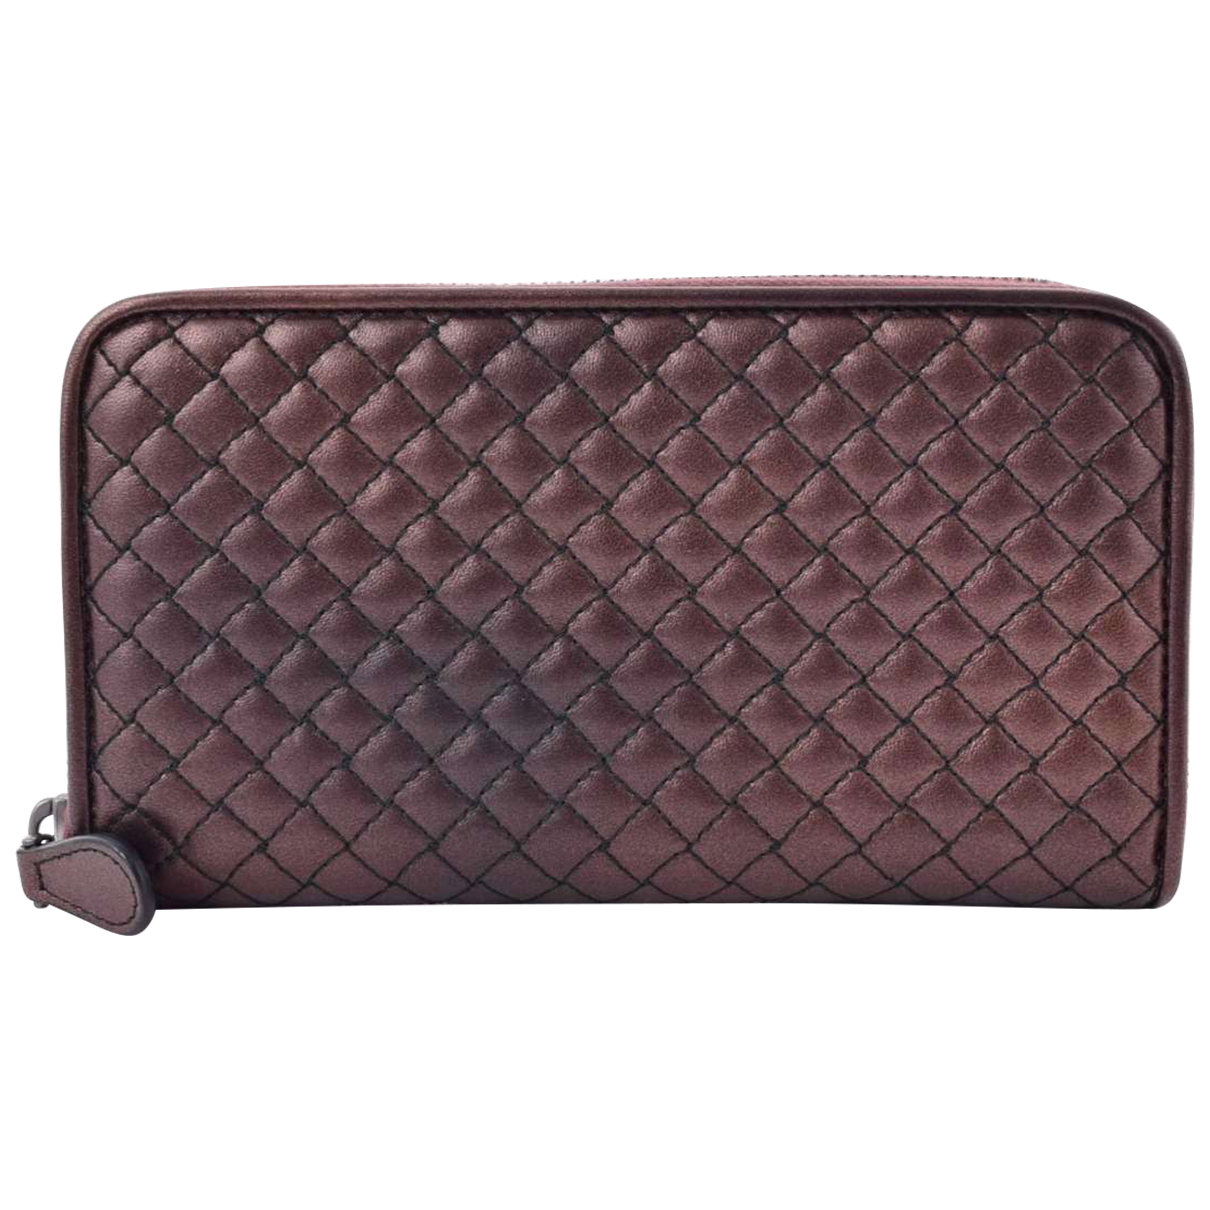 Bottega Veneta \N Brown Leather wallet for Women \N